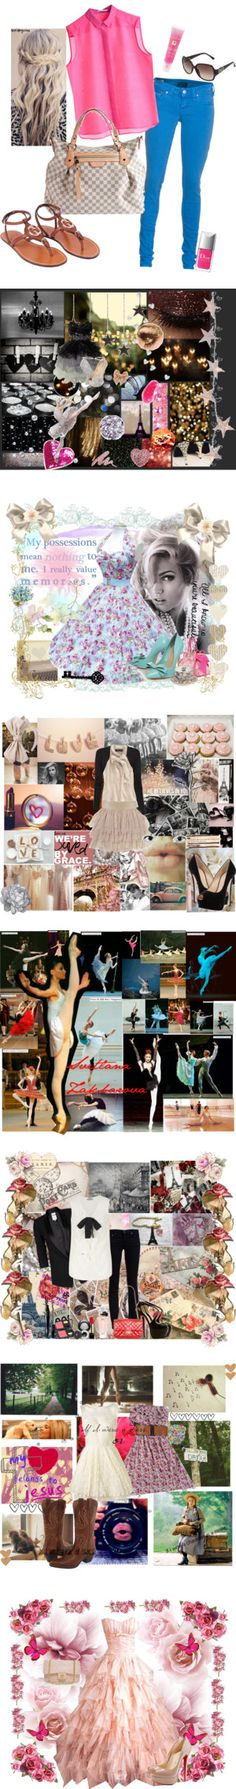 """Contest Winning Sets"" by ballerinagal16 ❤ liked on Polyvore"